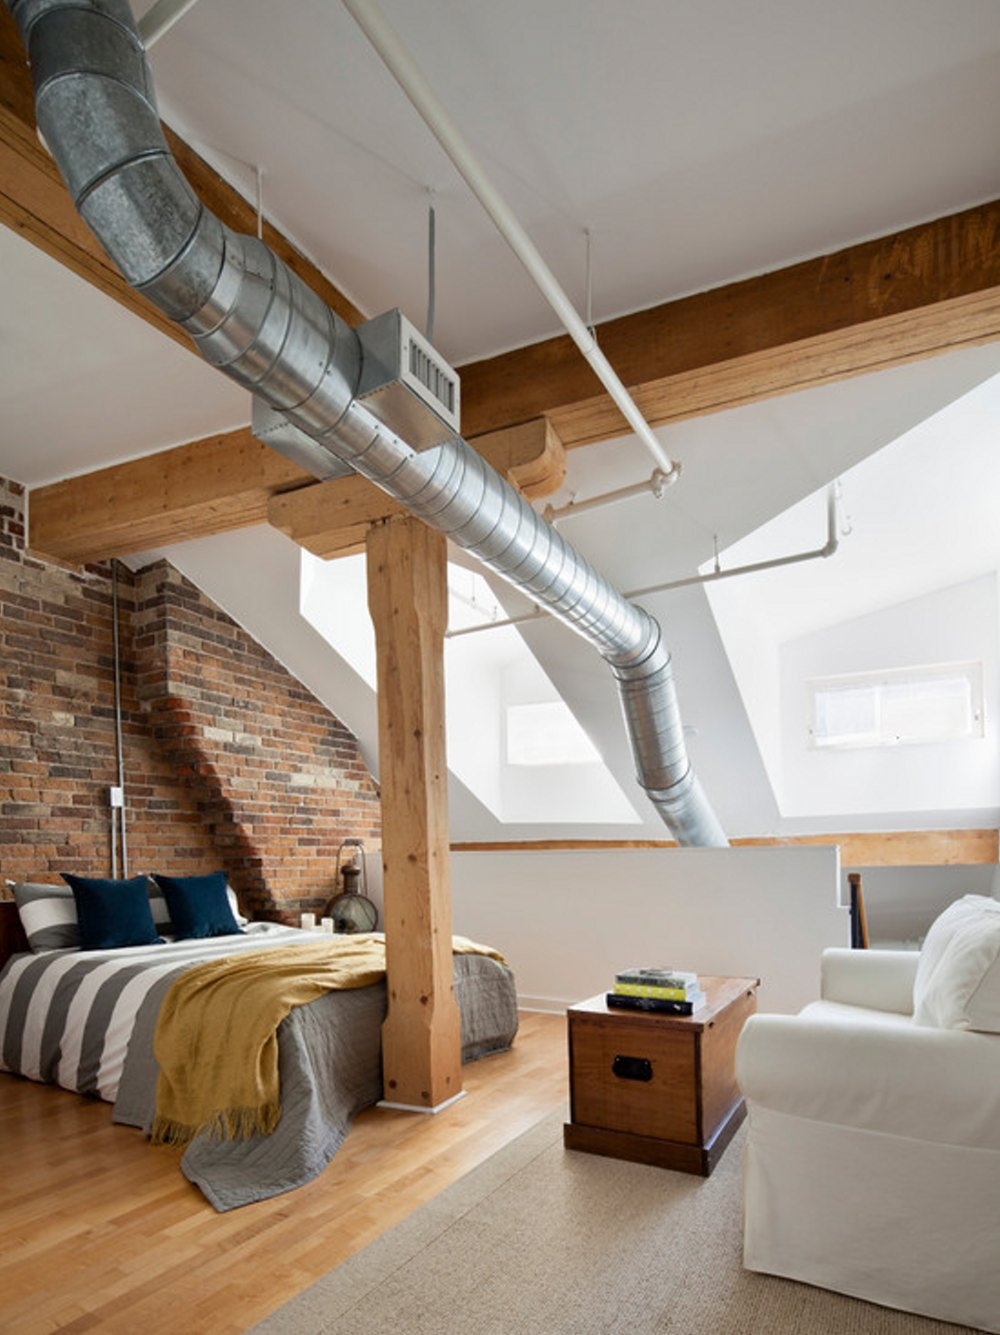 industrial-bedroom-interior-design-ideas-with-wooden-floors-and-white-sofa-chair